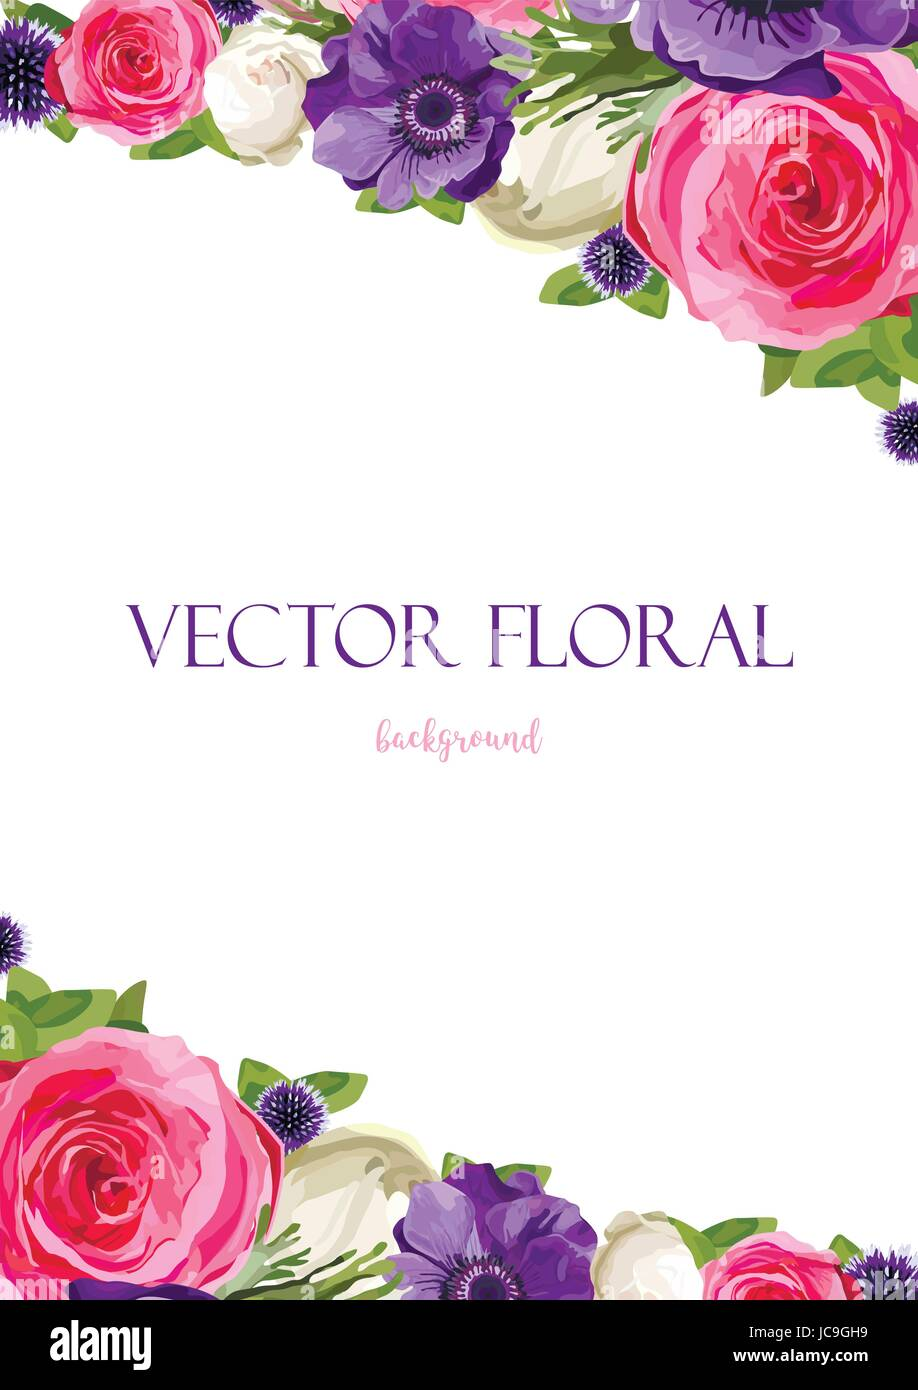 Flower Bright Flowers pink Rose Anemone Thistle leaves beautiful lovely Spring Summer bouquet vector illustration.Top - Stock Image